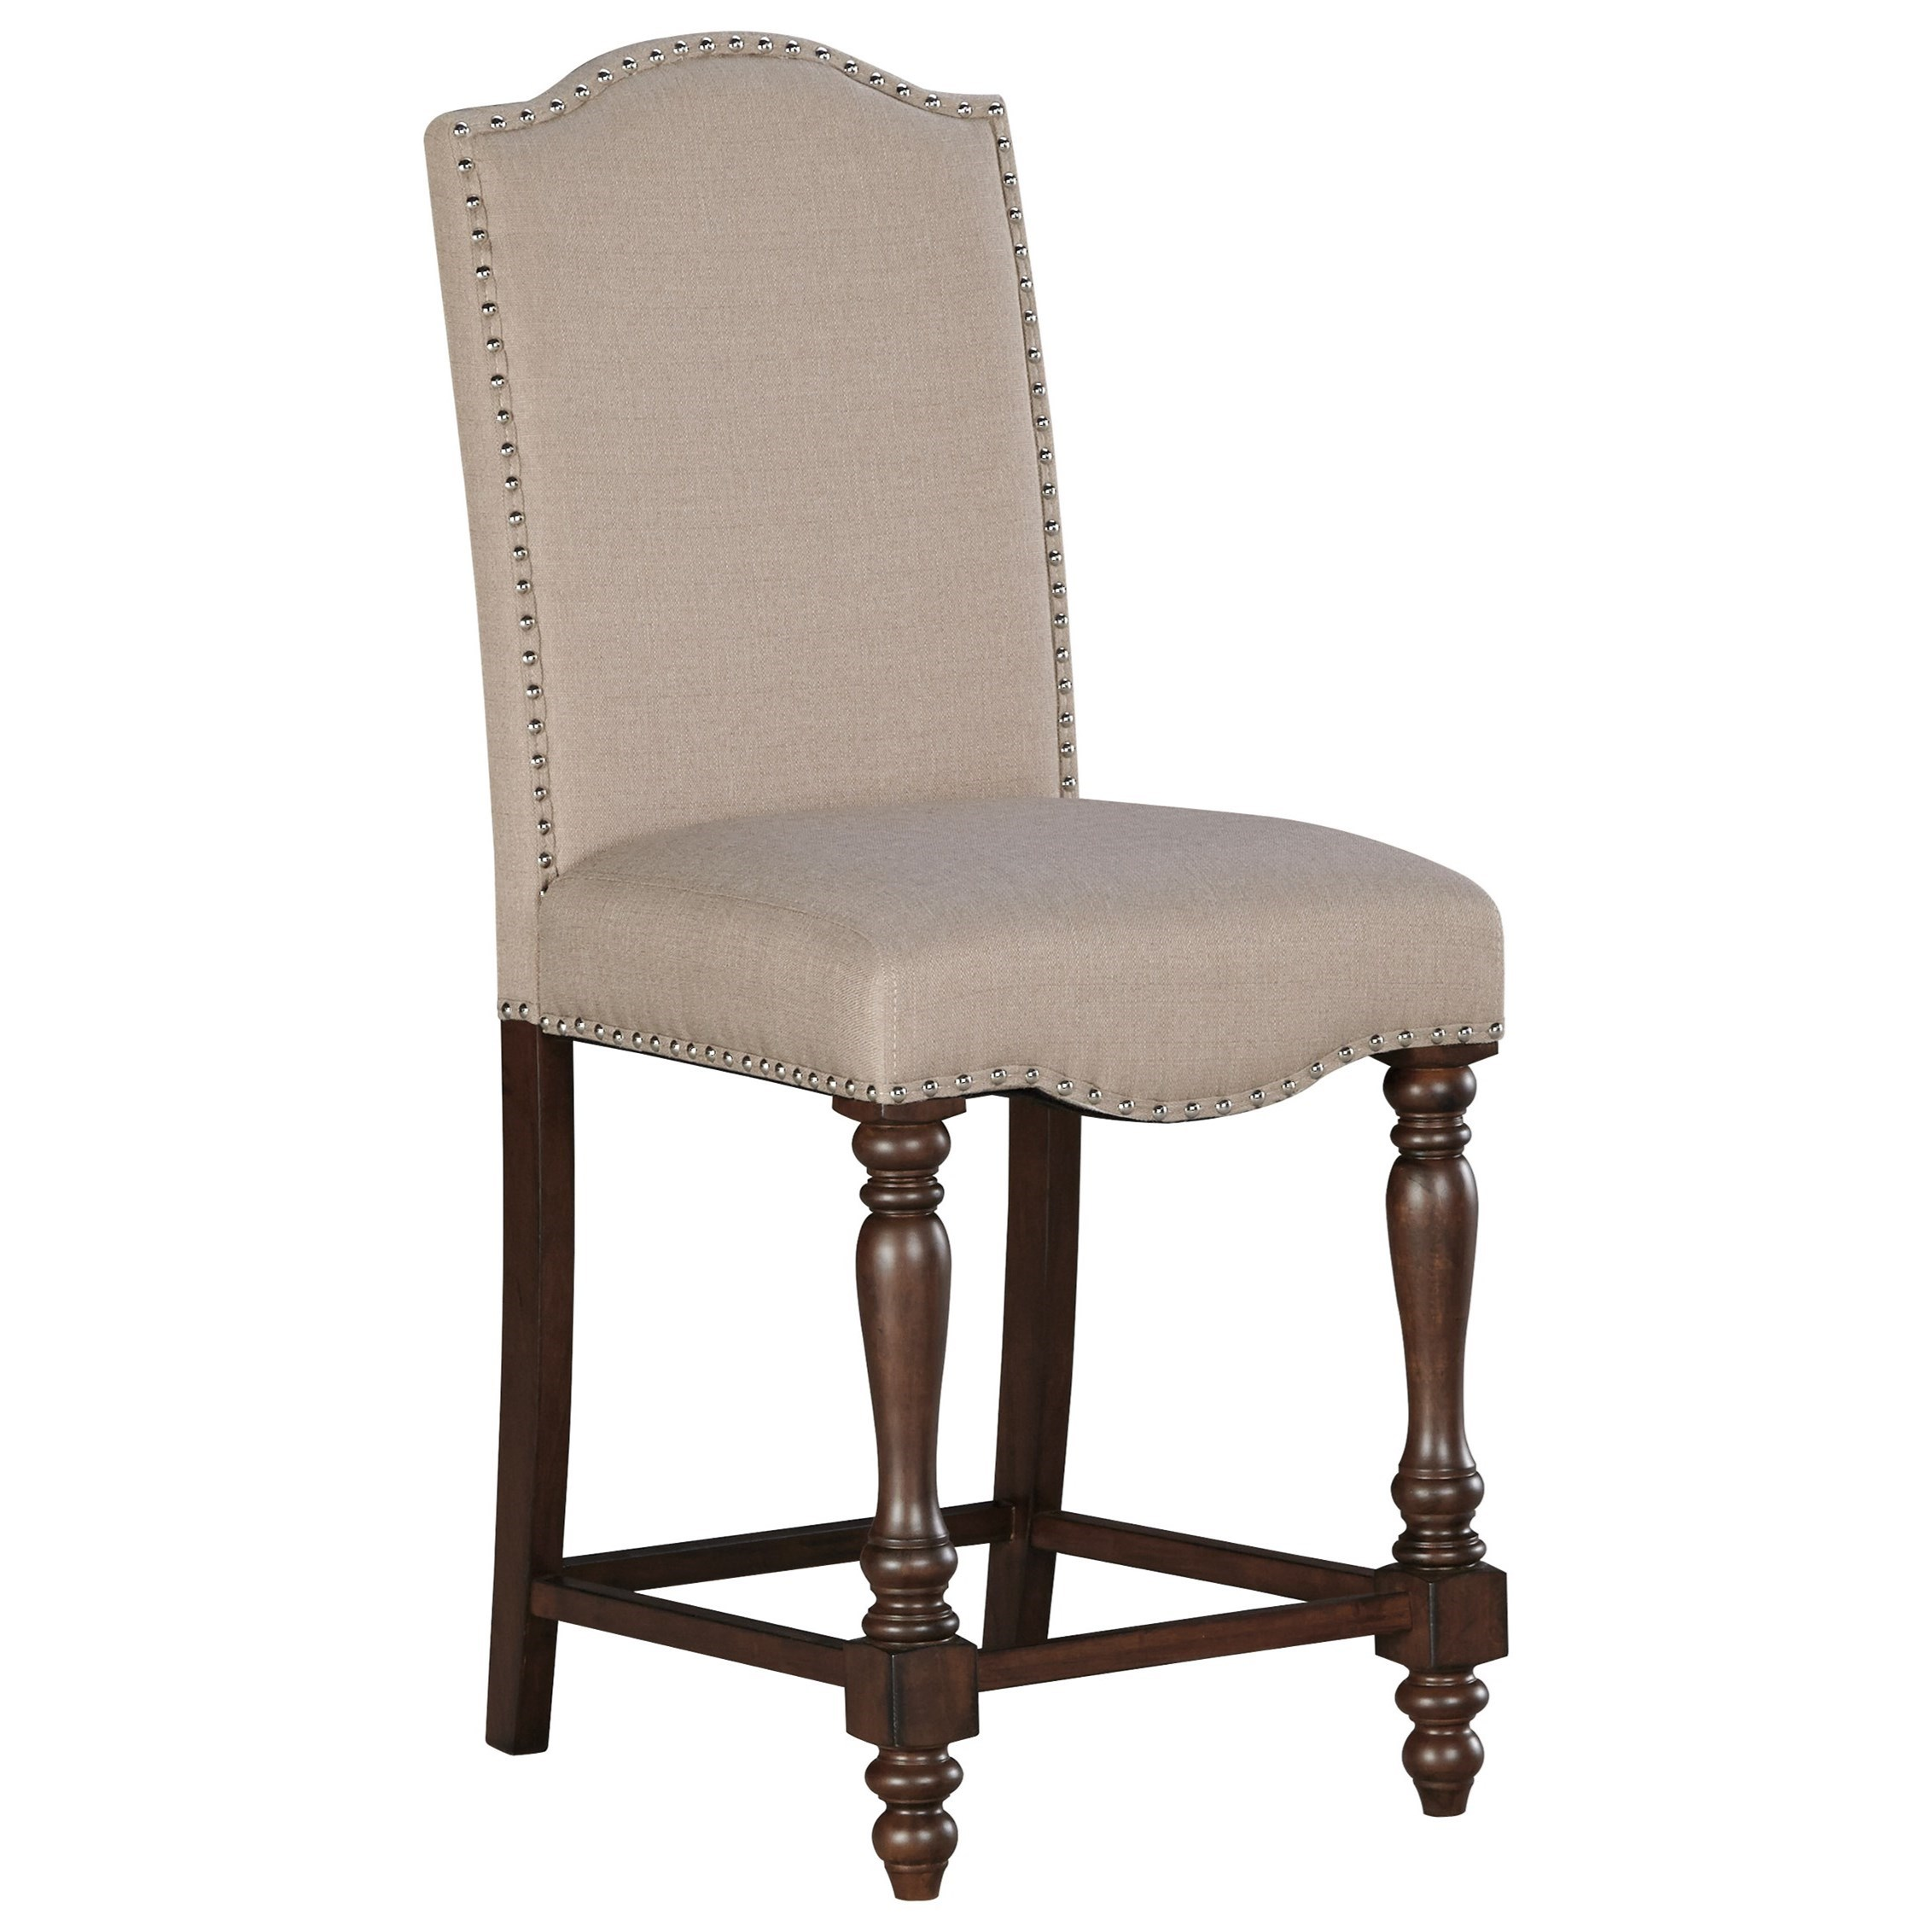 Signature Design by Ashley Baxenburg Upholstered Barstool - Item Number: D506-124